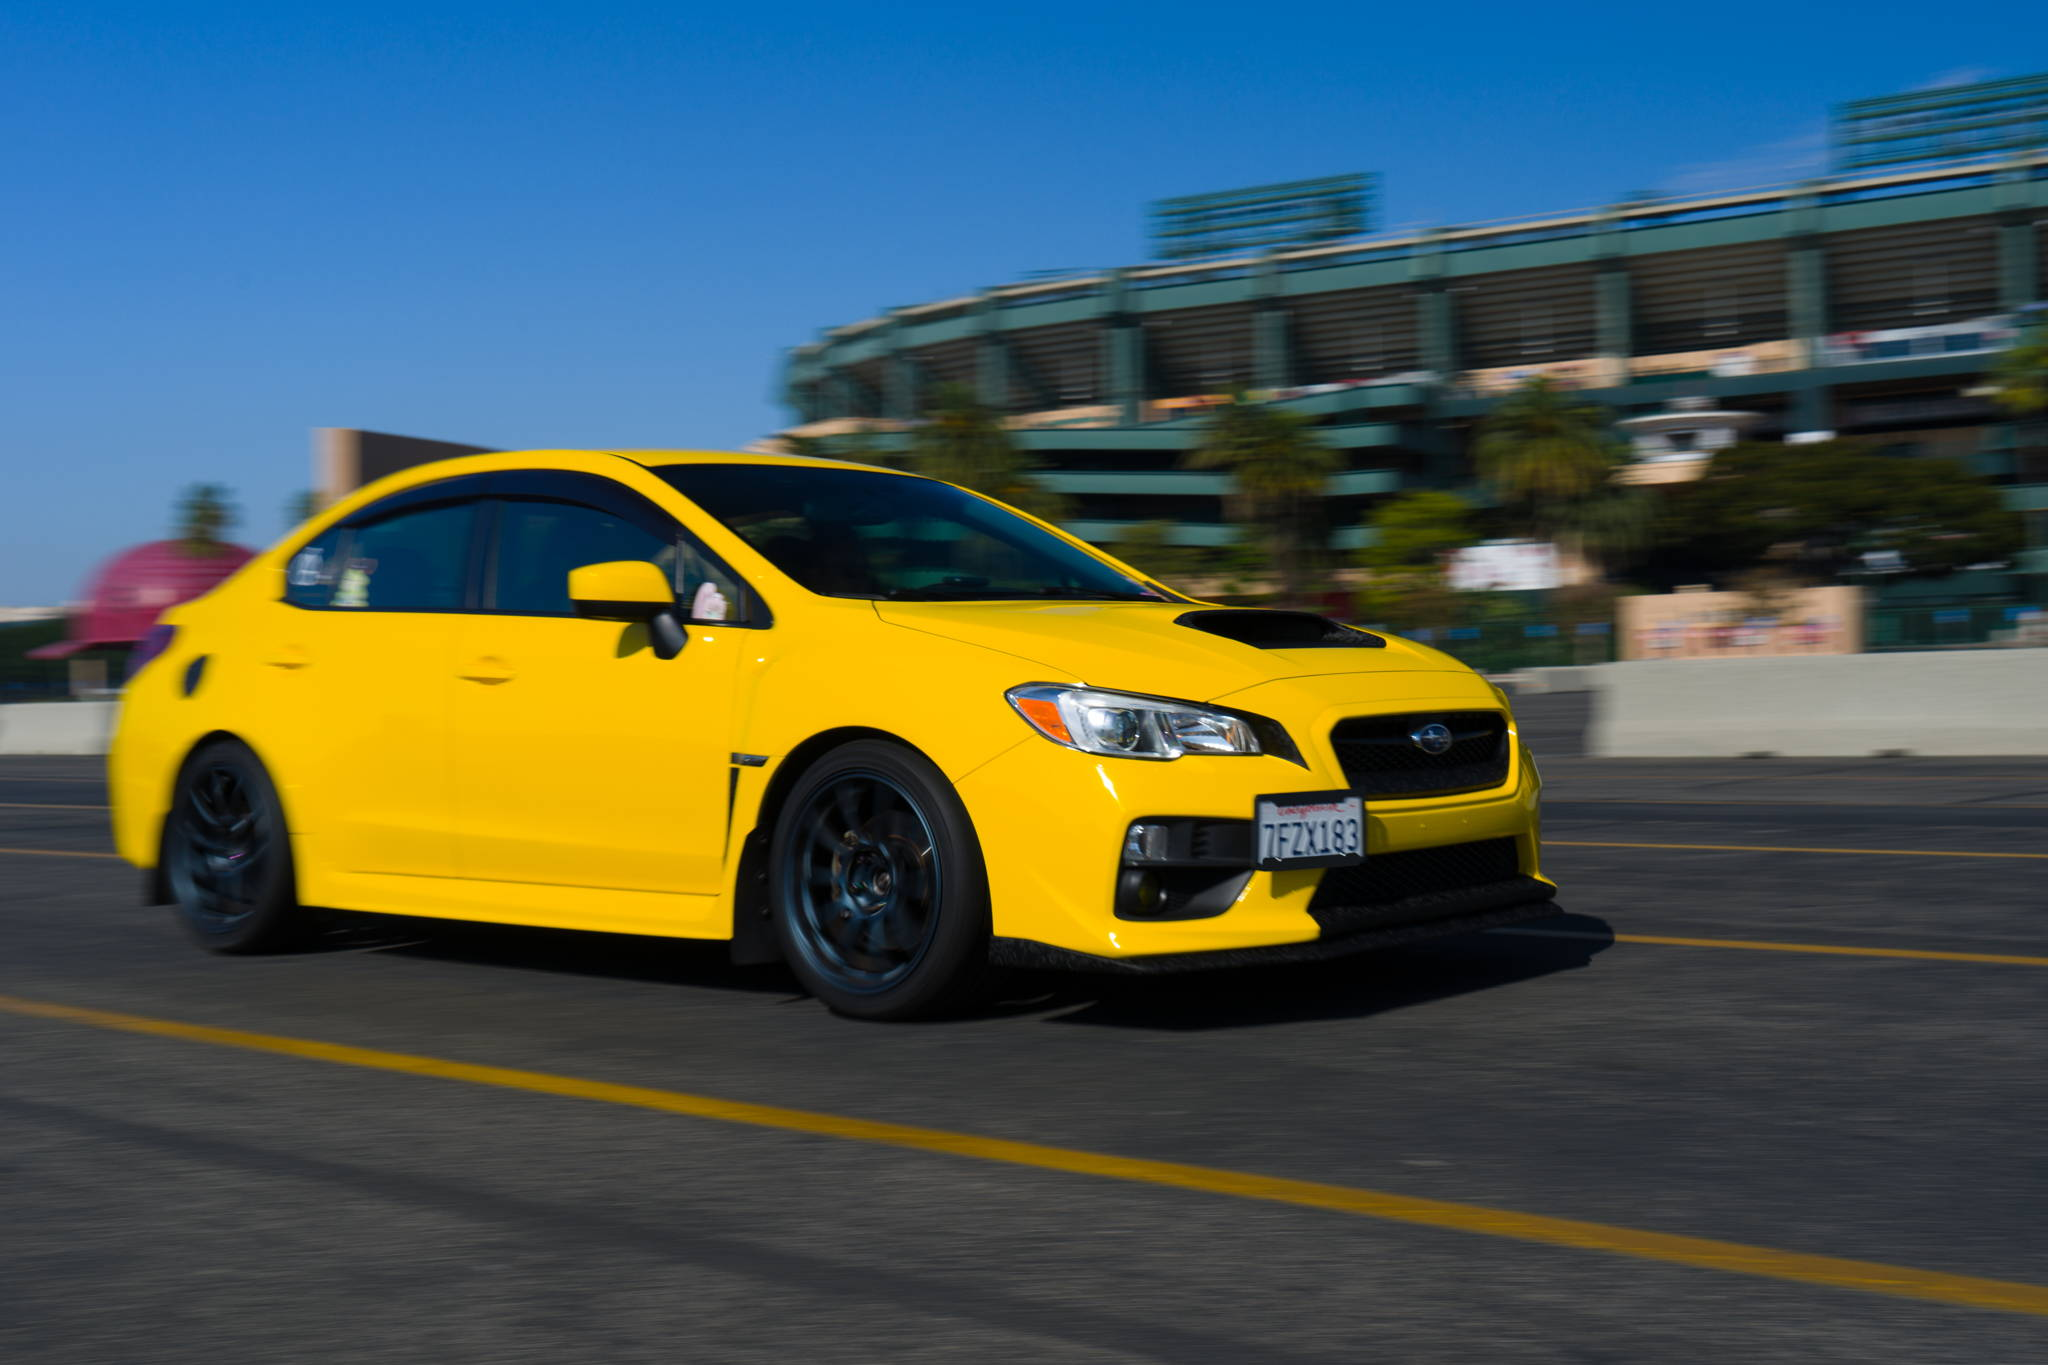 Subaru WRX Coilovers for Street and Track - Daily Driver Coilovers